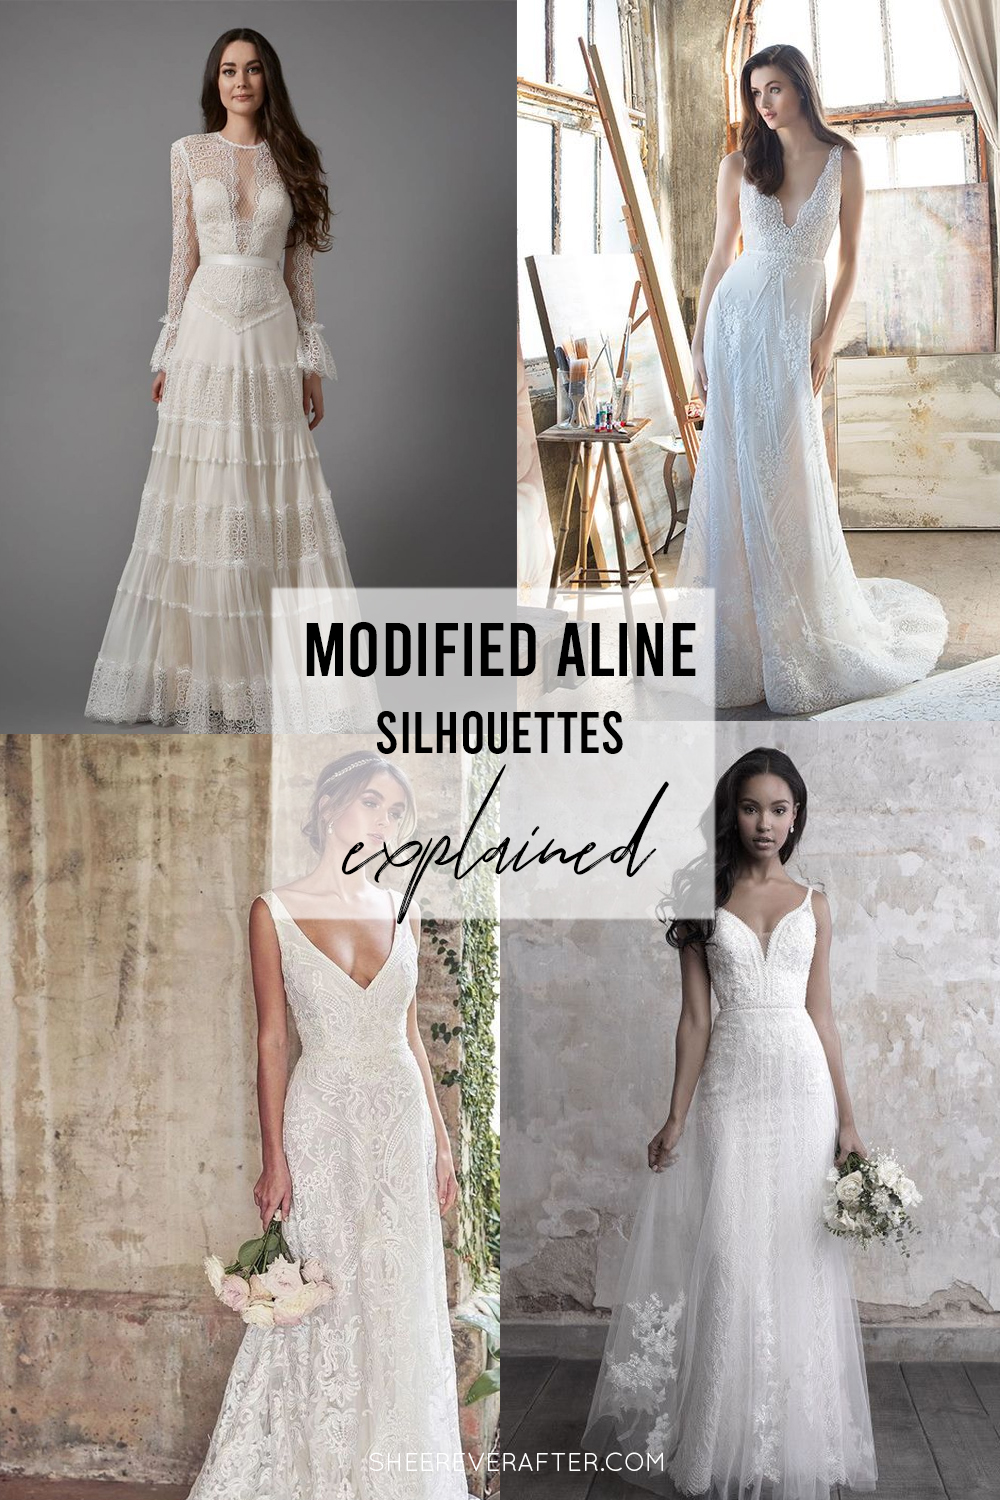 #weddingdress #weddingdresssilhouettes #bridalgown #bridal #weddingday #weddingideas #beautifuldress #aline #modifiedaline